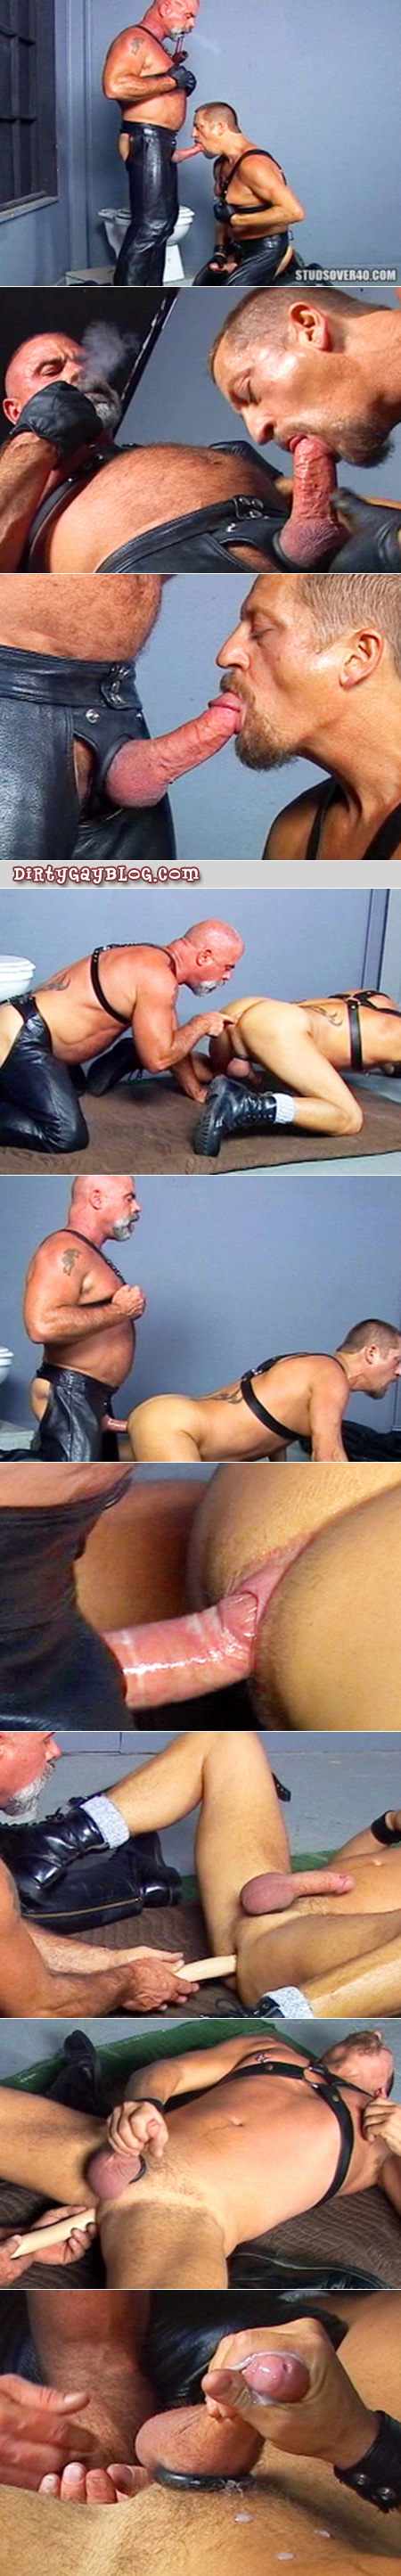 Older leather men know how to make gay sex work.  They can really getting their hairy bottom men to cum!